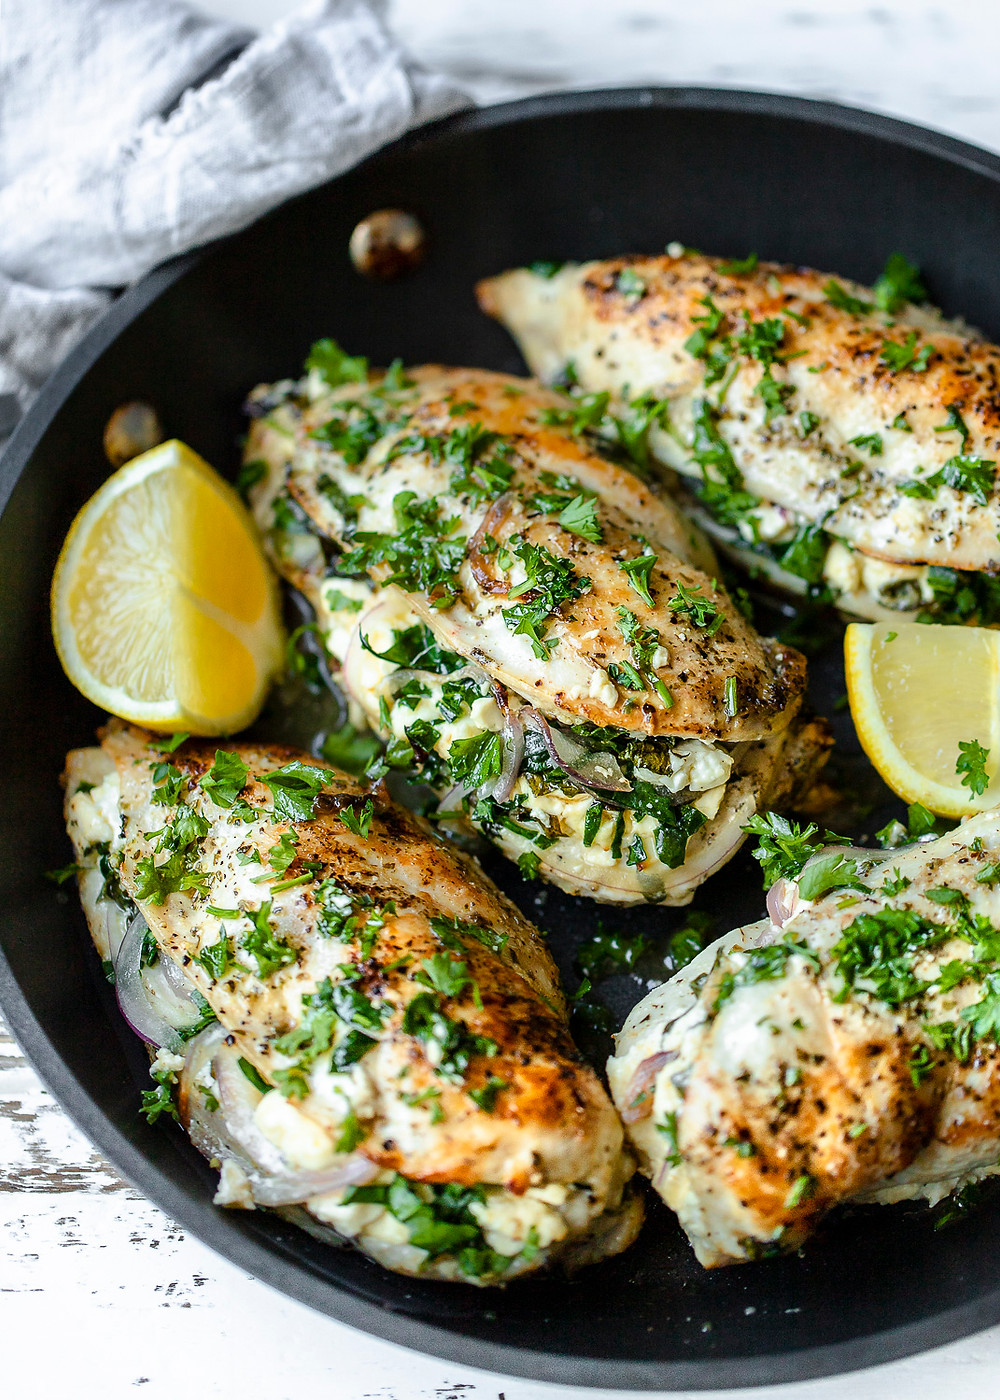 Stuffed Chicken with Spinach and Feta